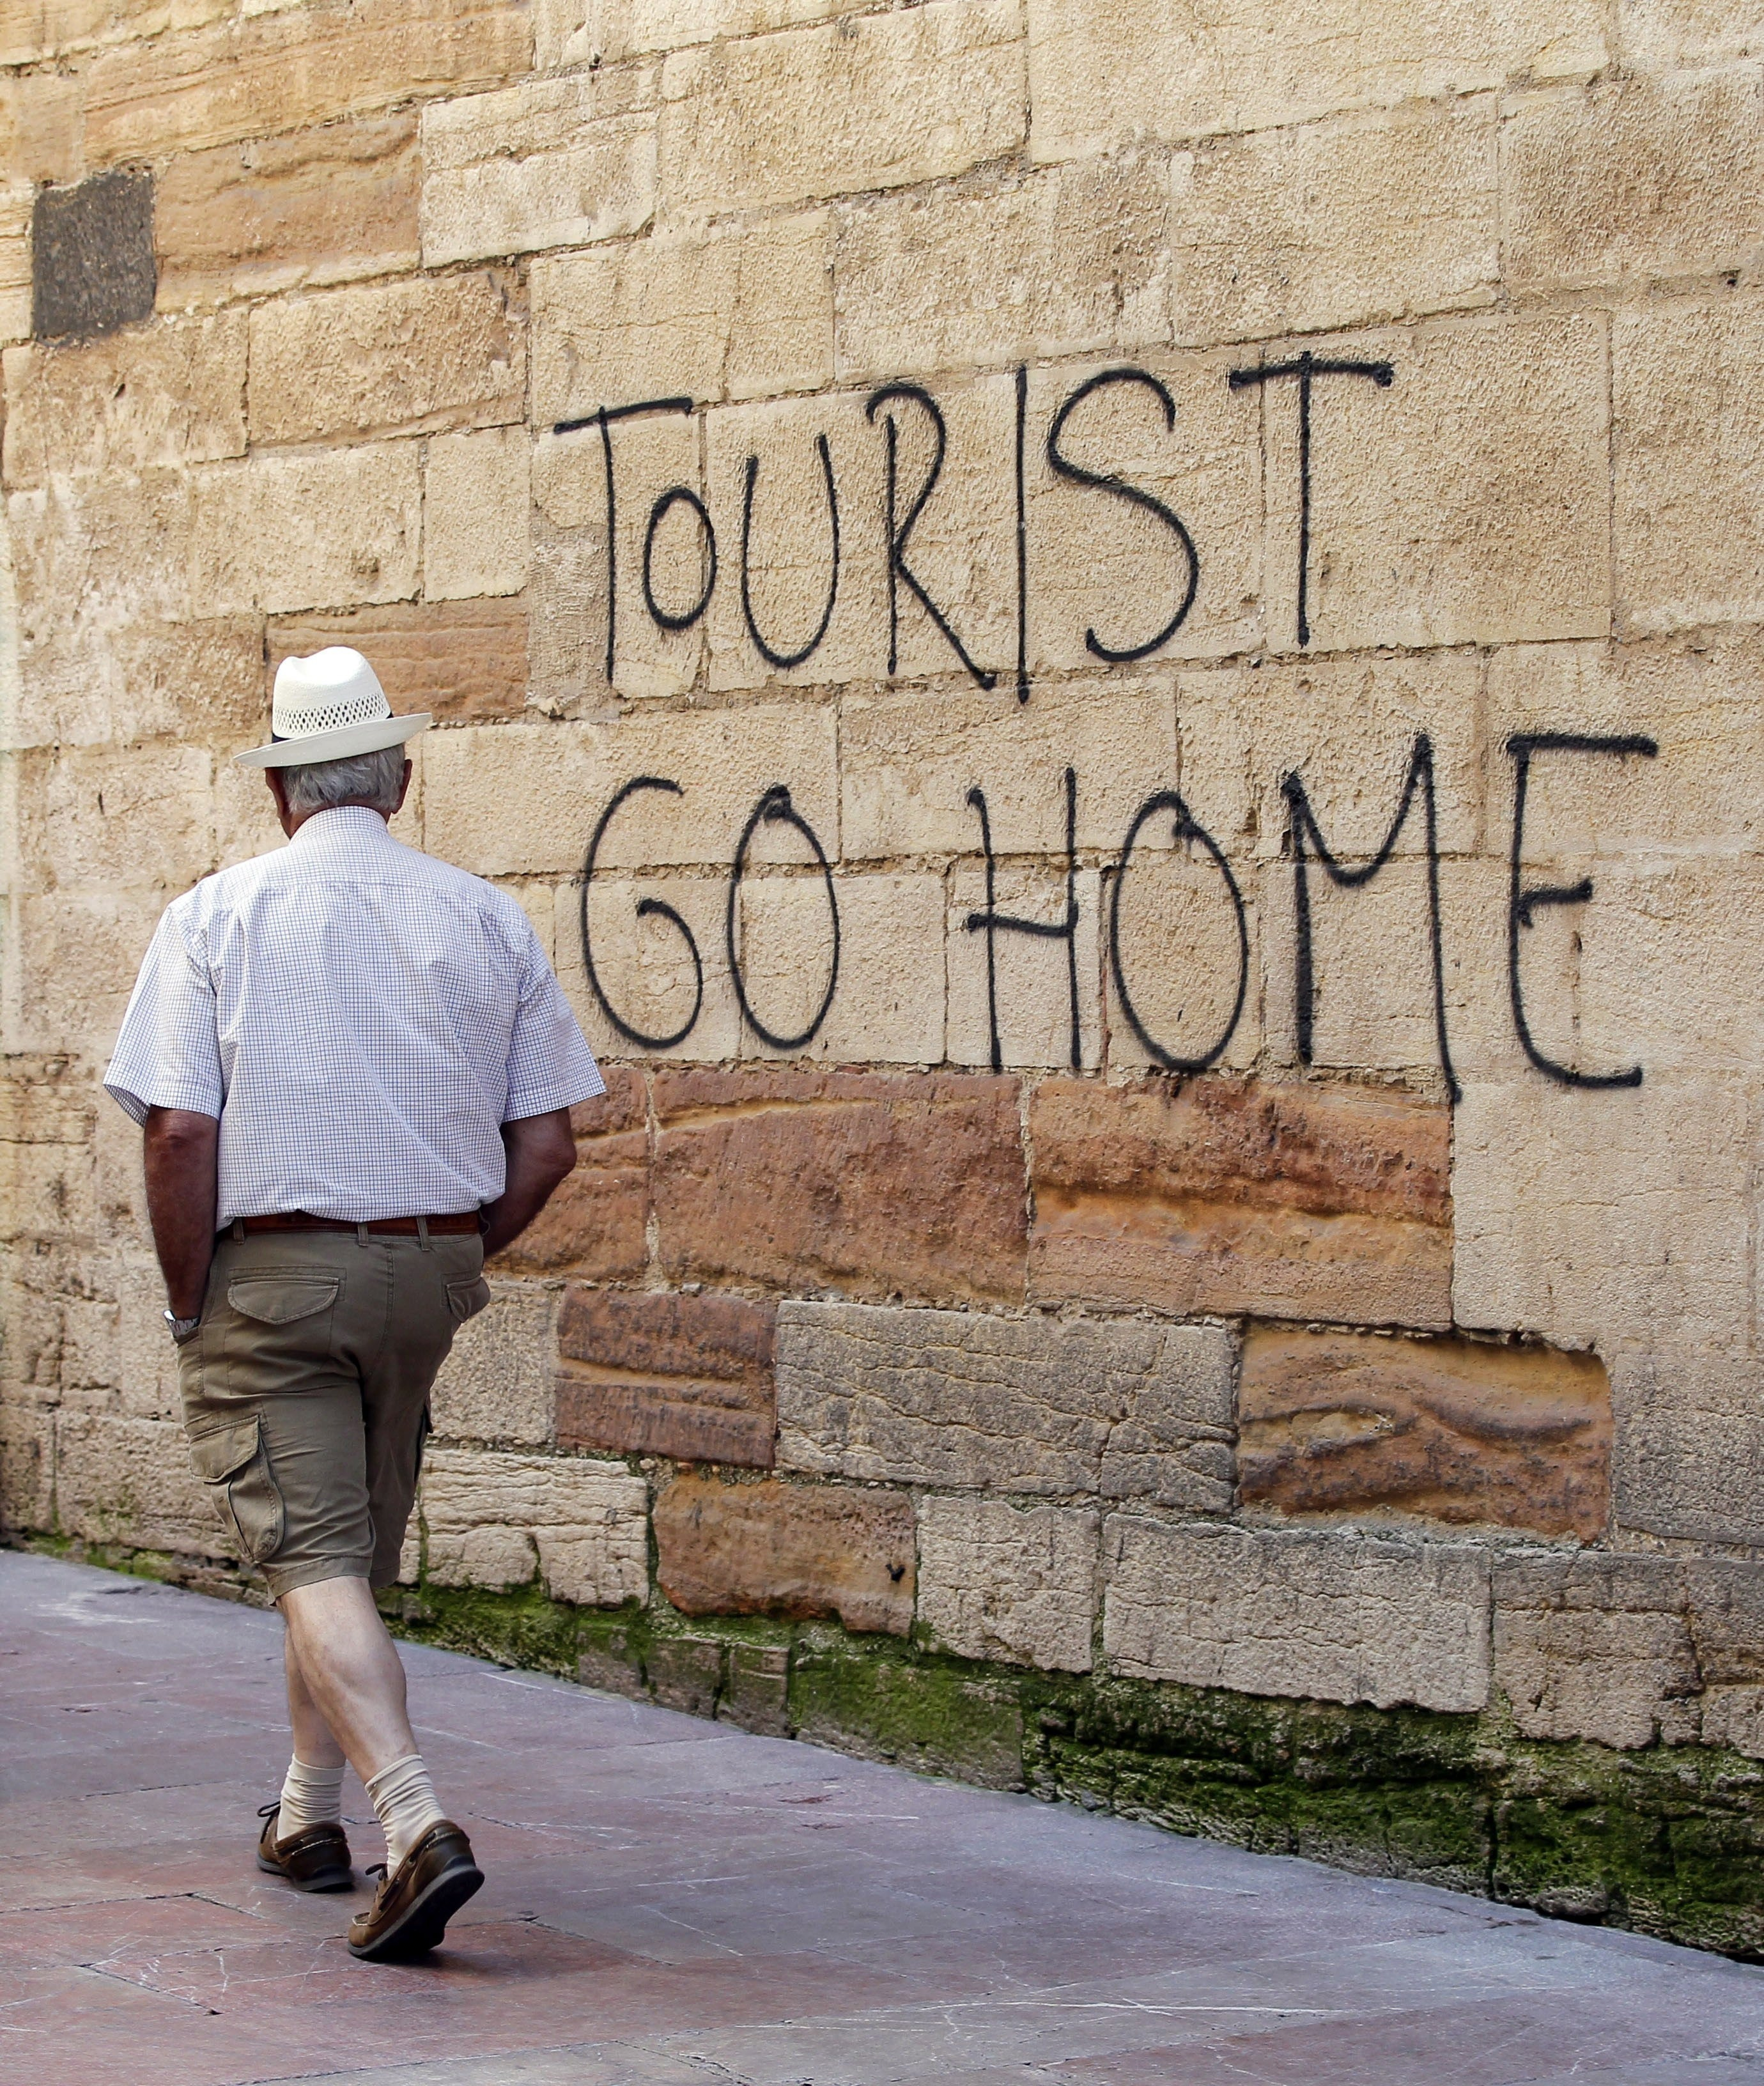 Home To Go Australia Why Australia Might Be At Risk Of Overtourism